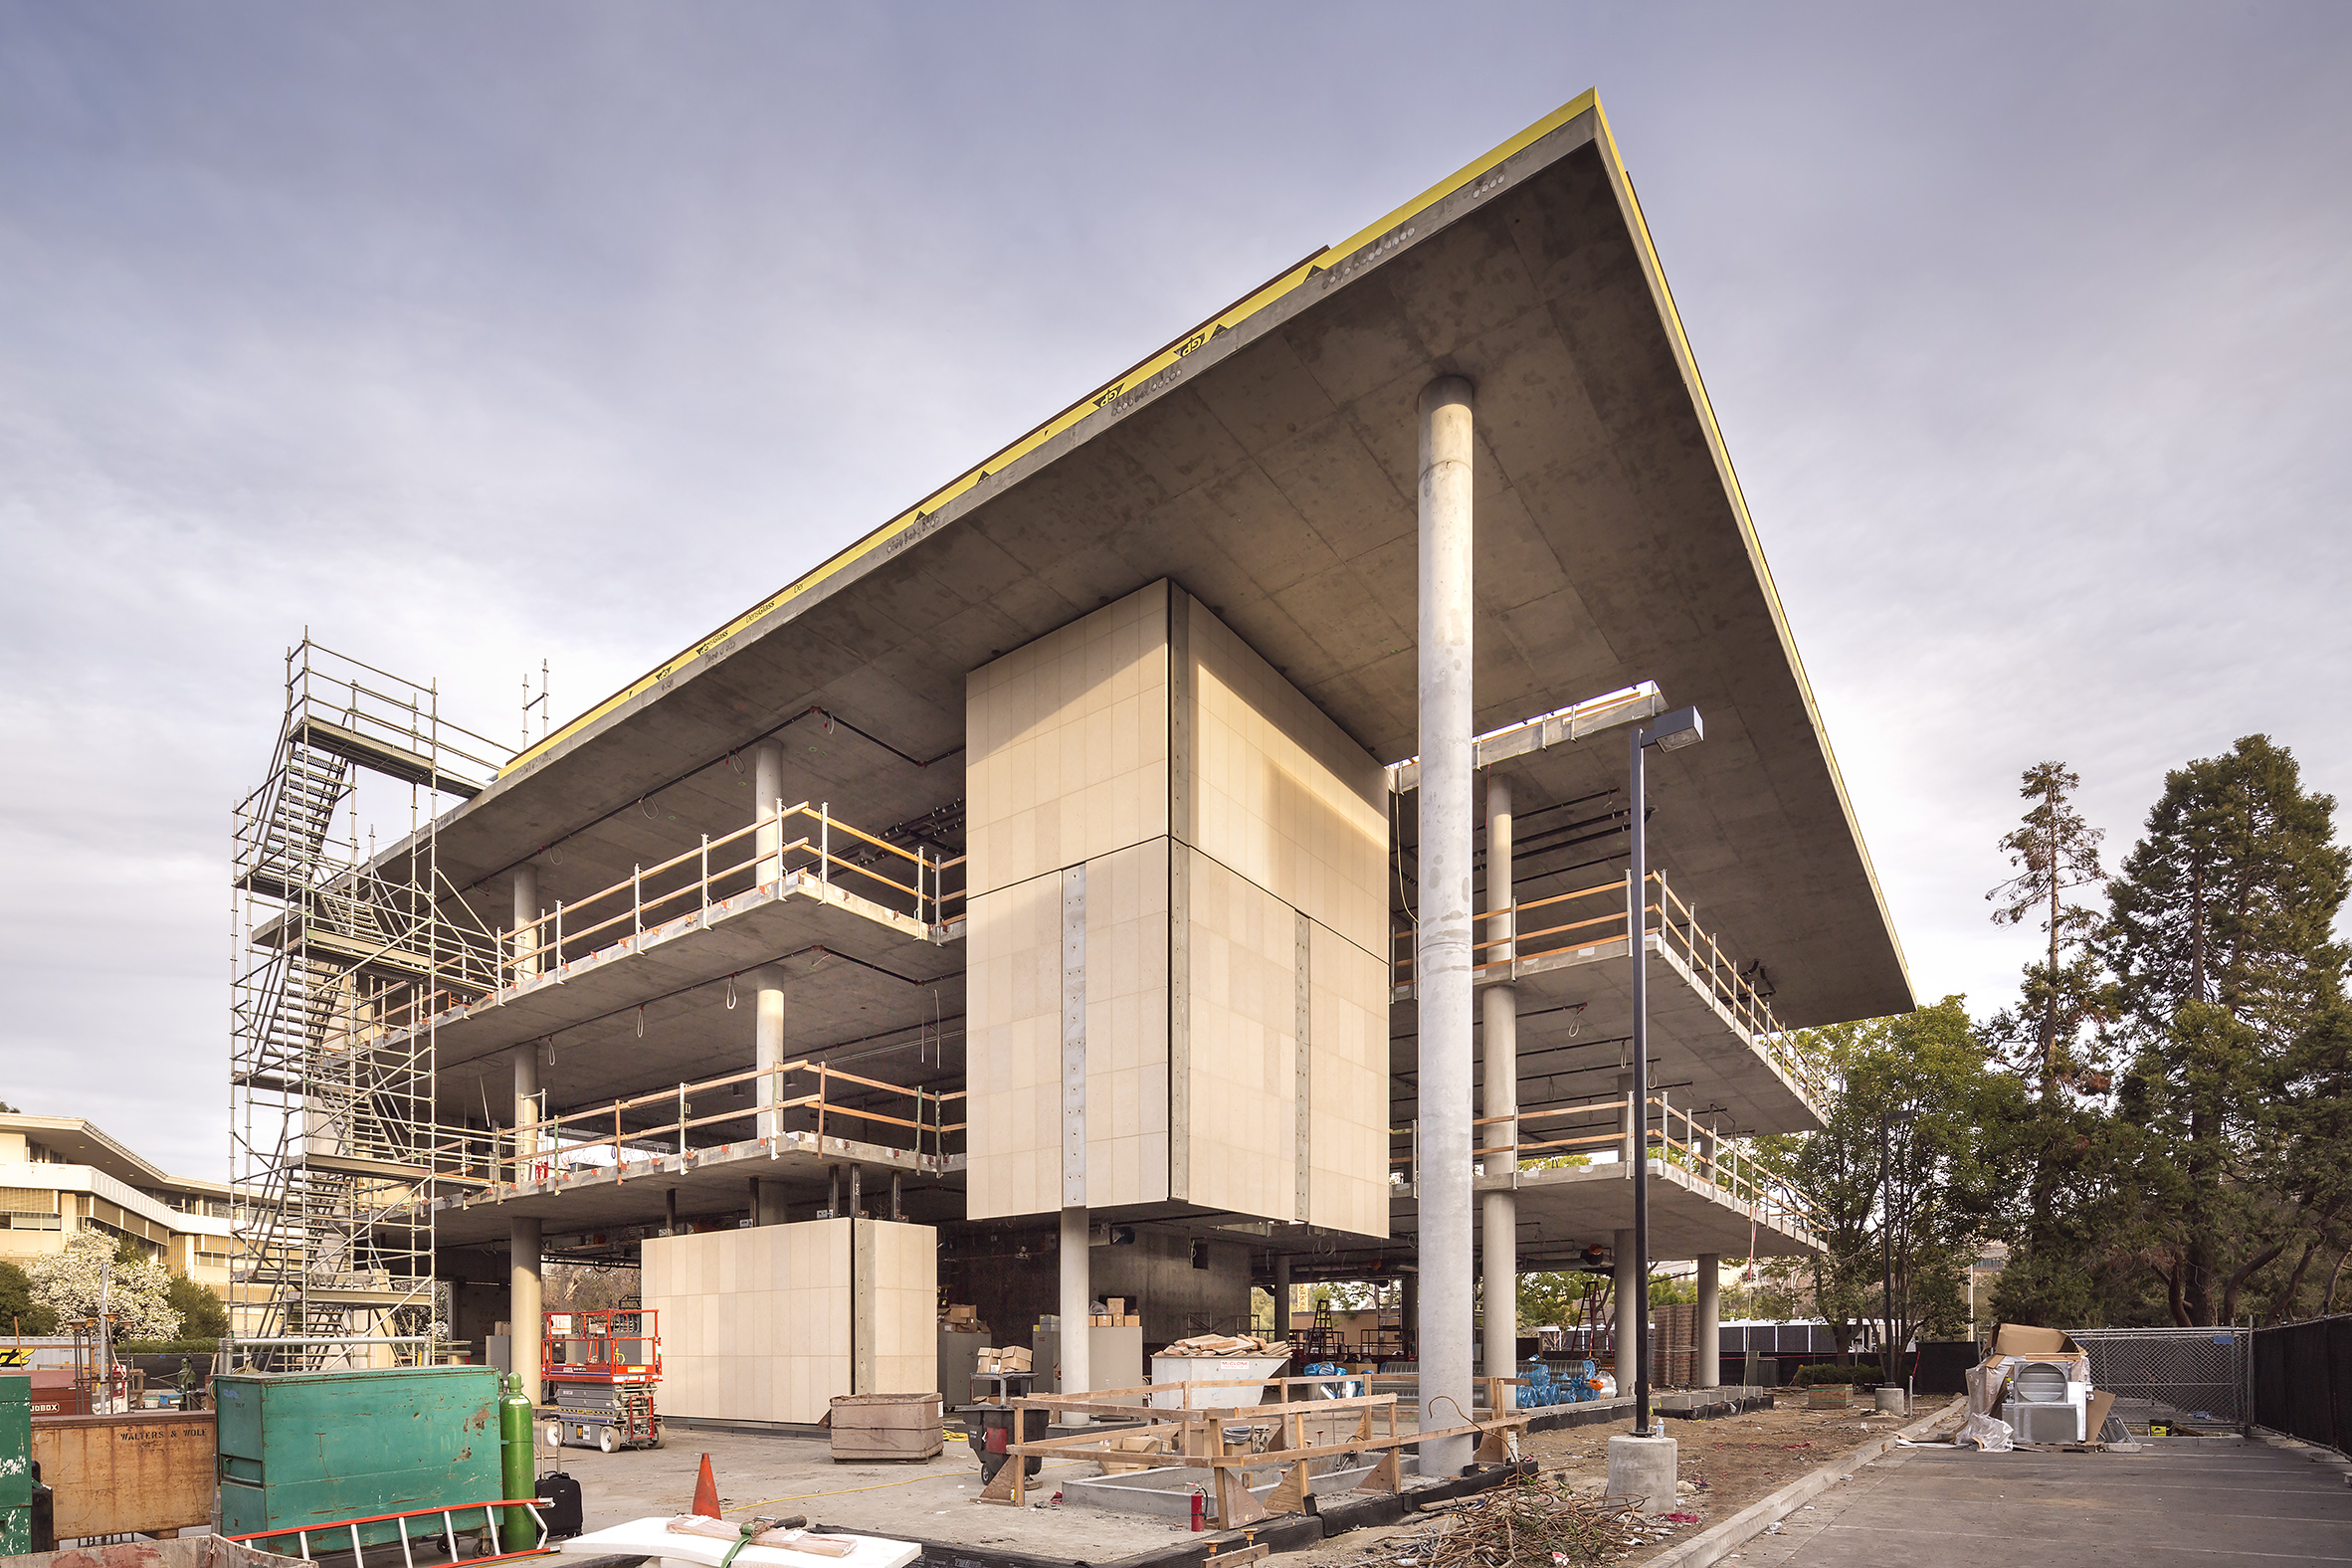 Stanford School of Medicine C.J. Huang Building Under Construction with Concrete Cantilever at Angle